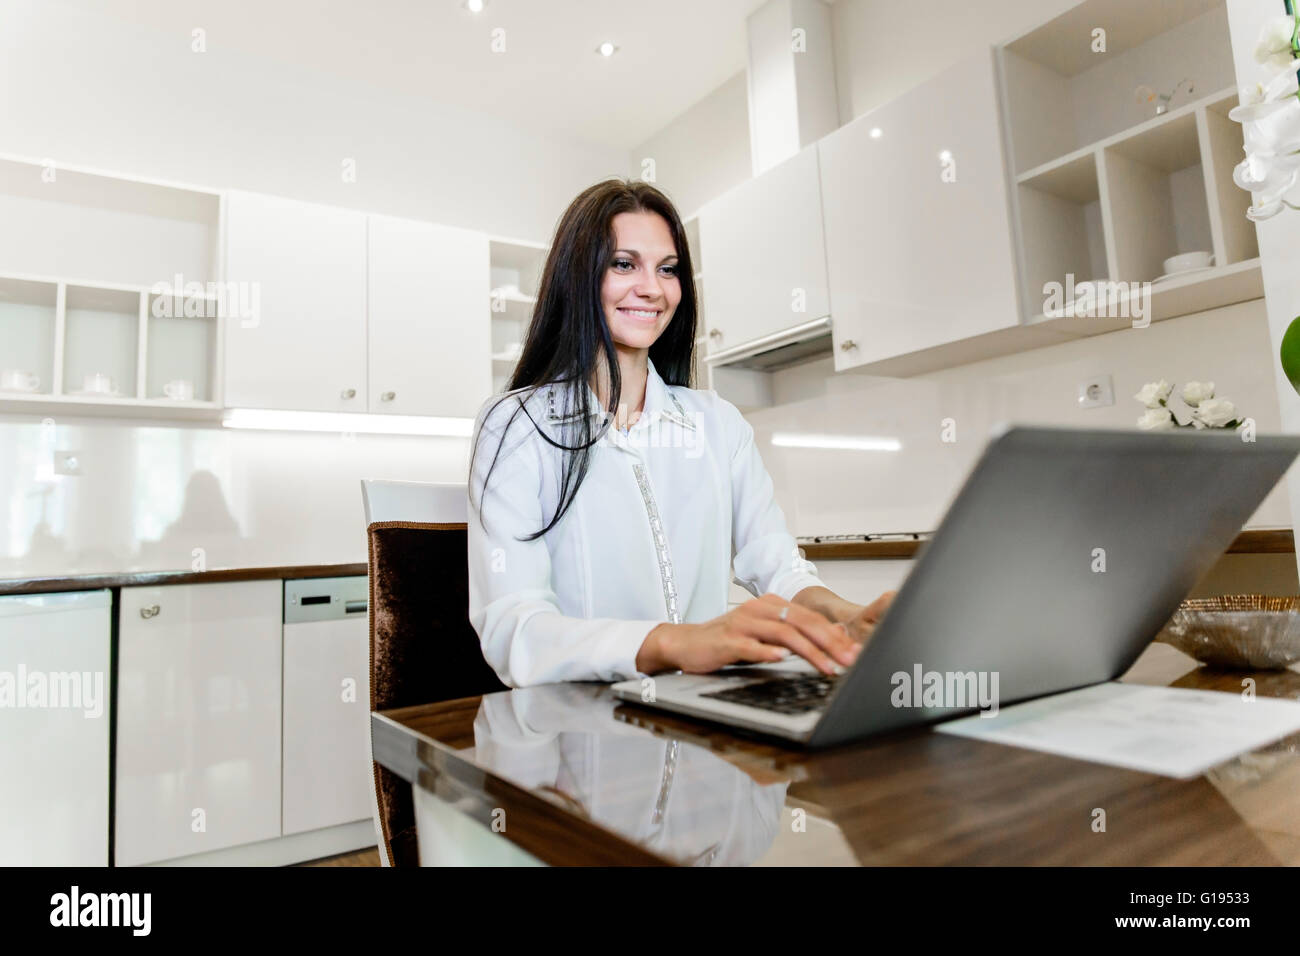 Belle brune qui travaillent sur un ordinateur portable dans sa belle maison Photo Stock